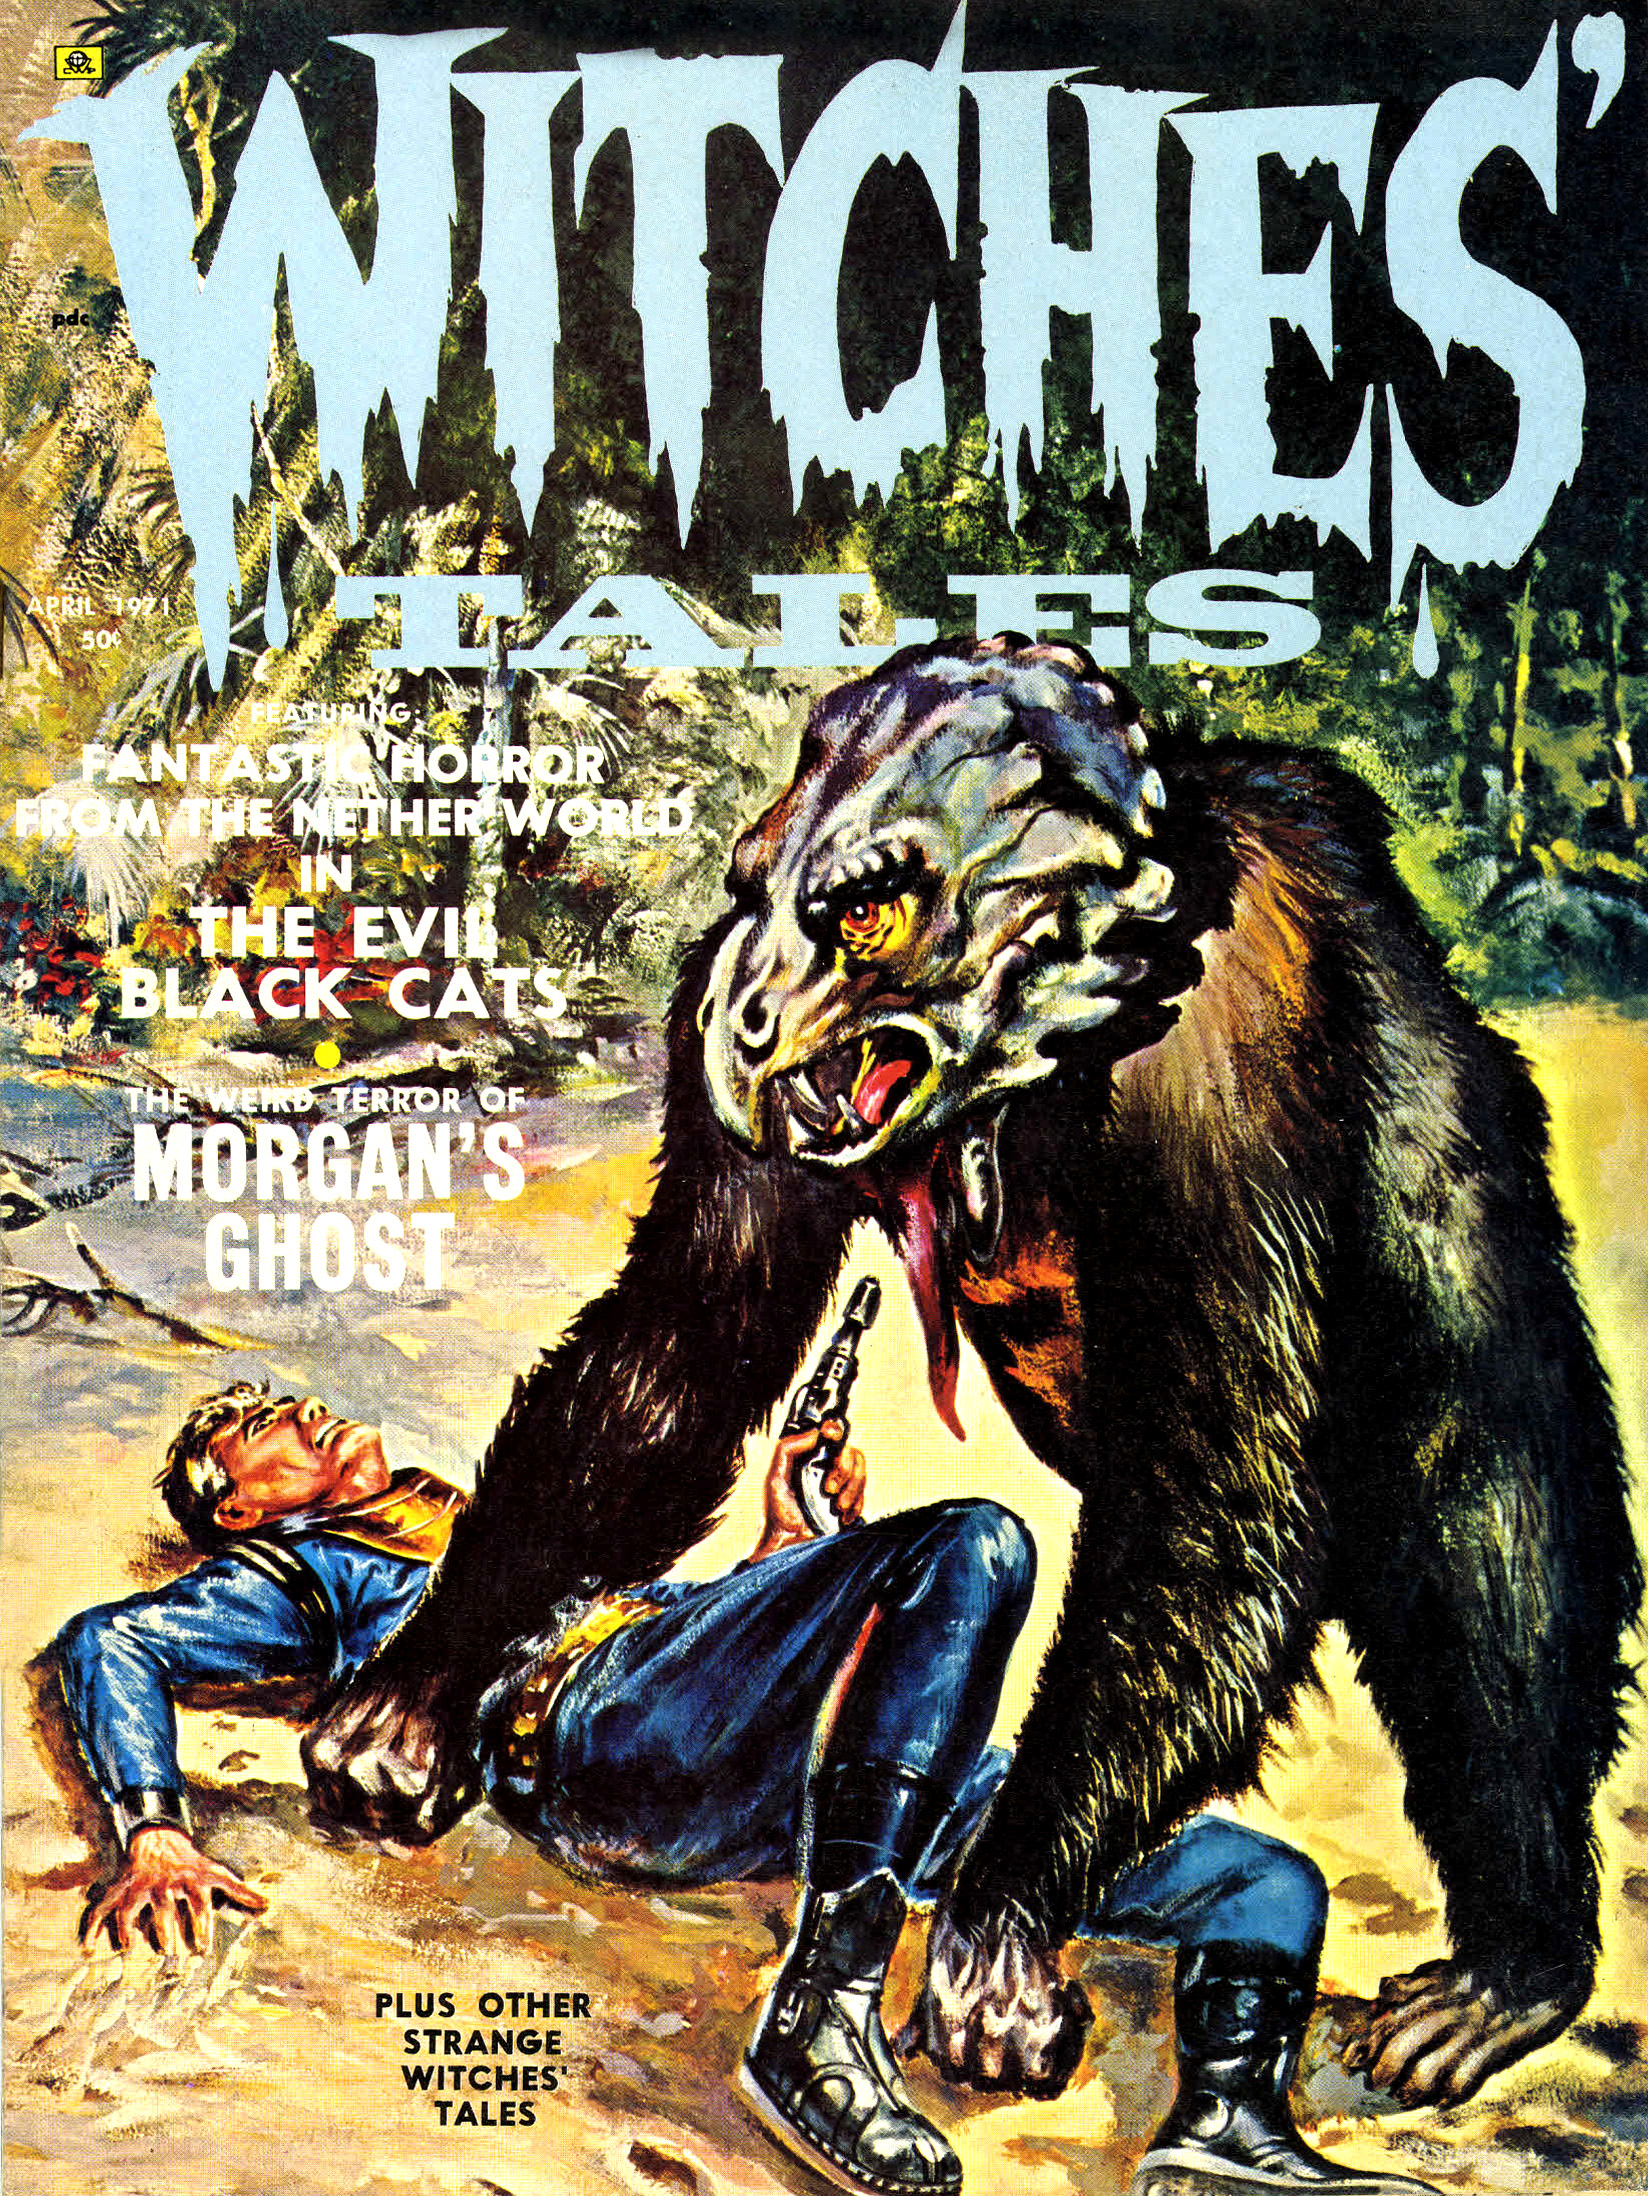 Witches' Tales Vol. 3 #2 (Eerie Publications 1971)